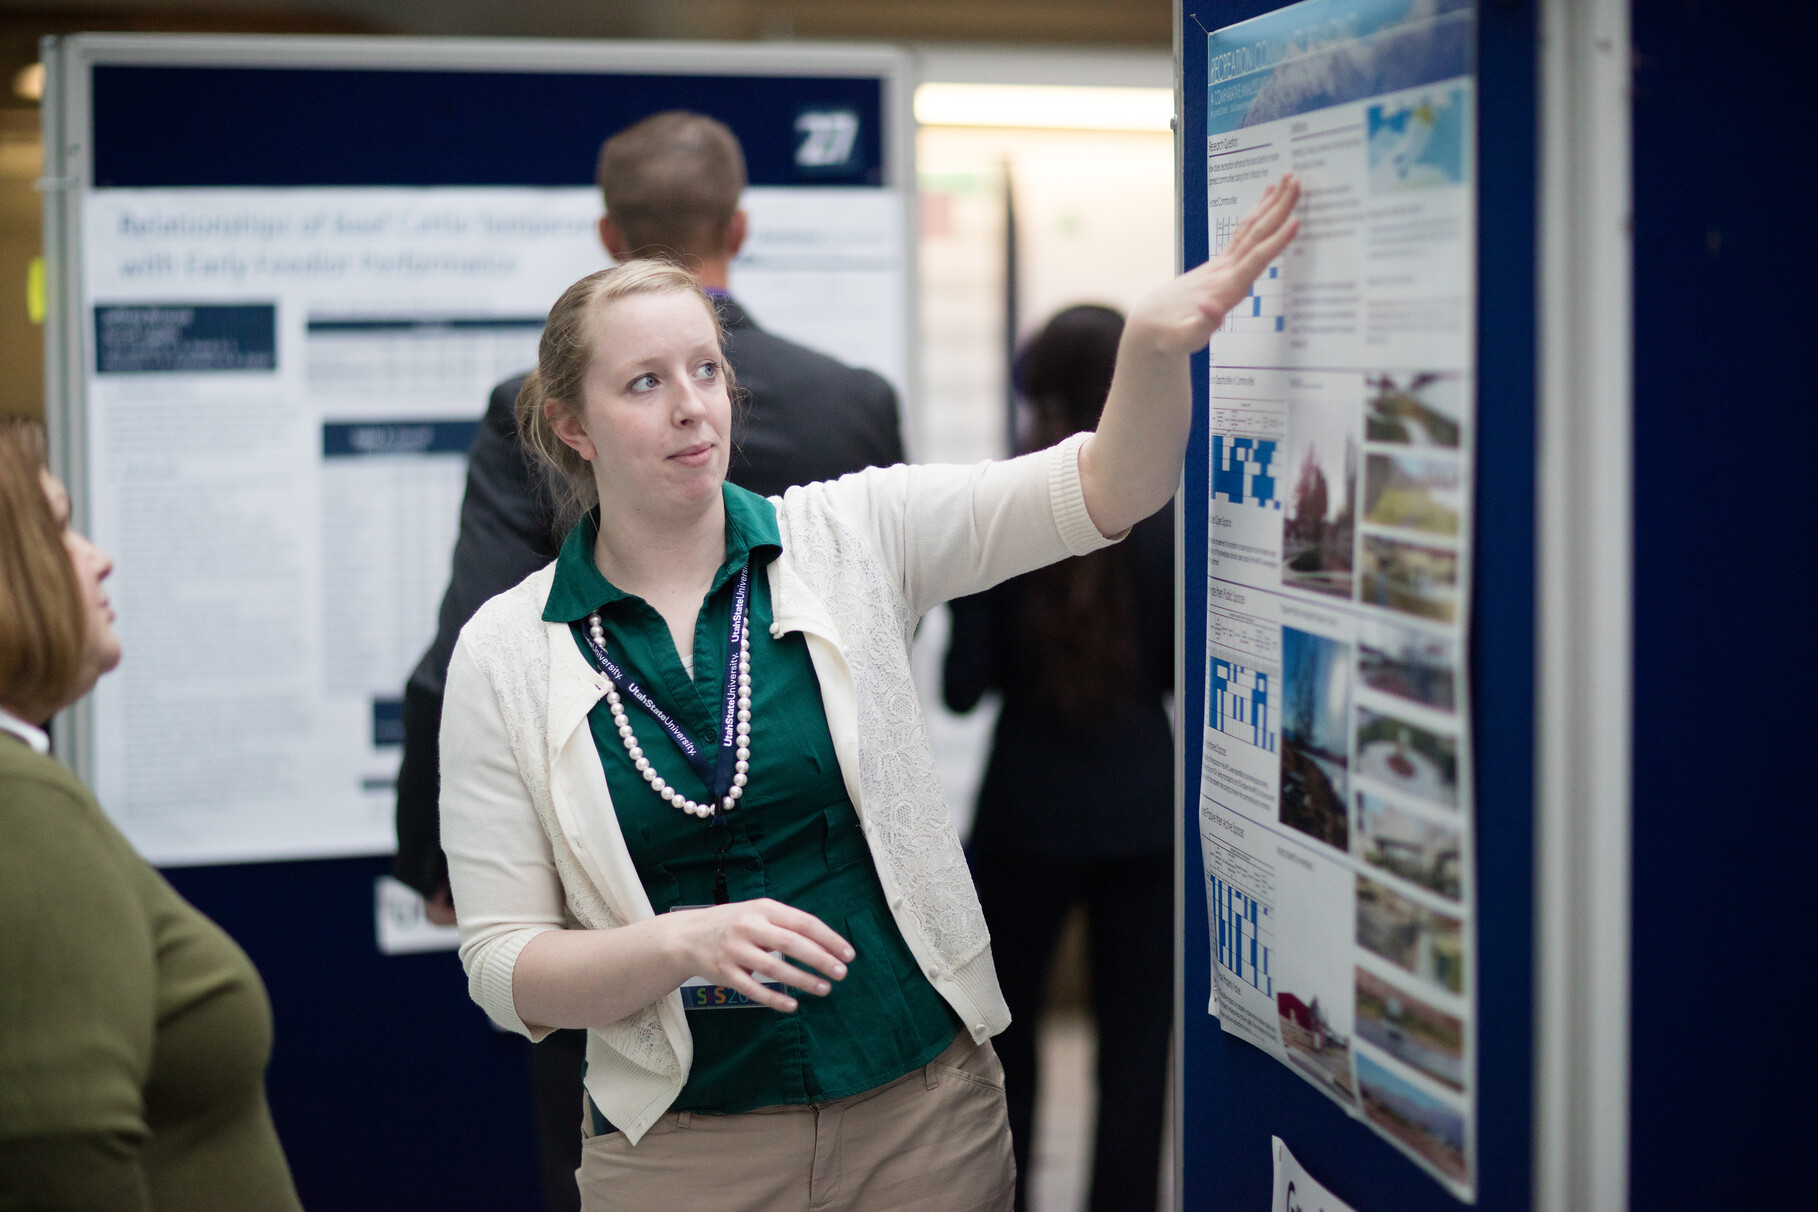 Student Presenting at Research Week